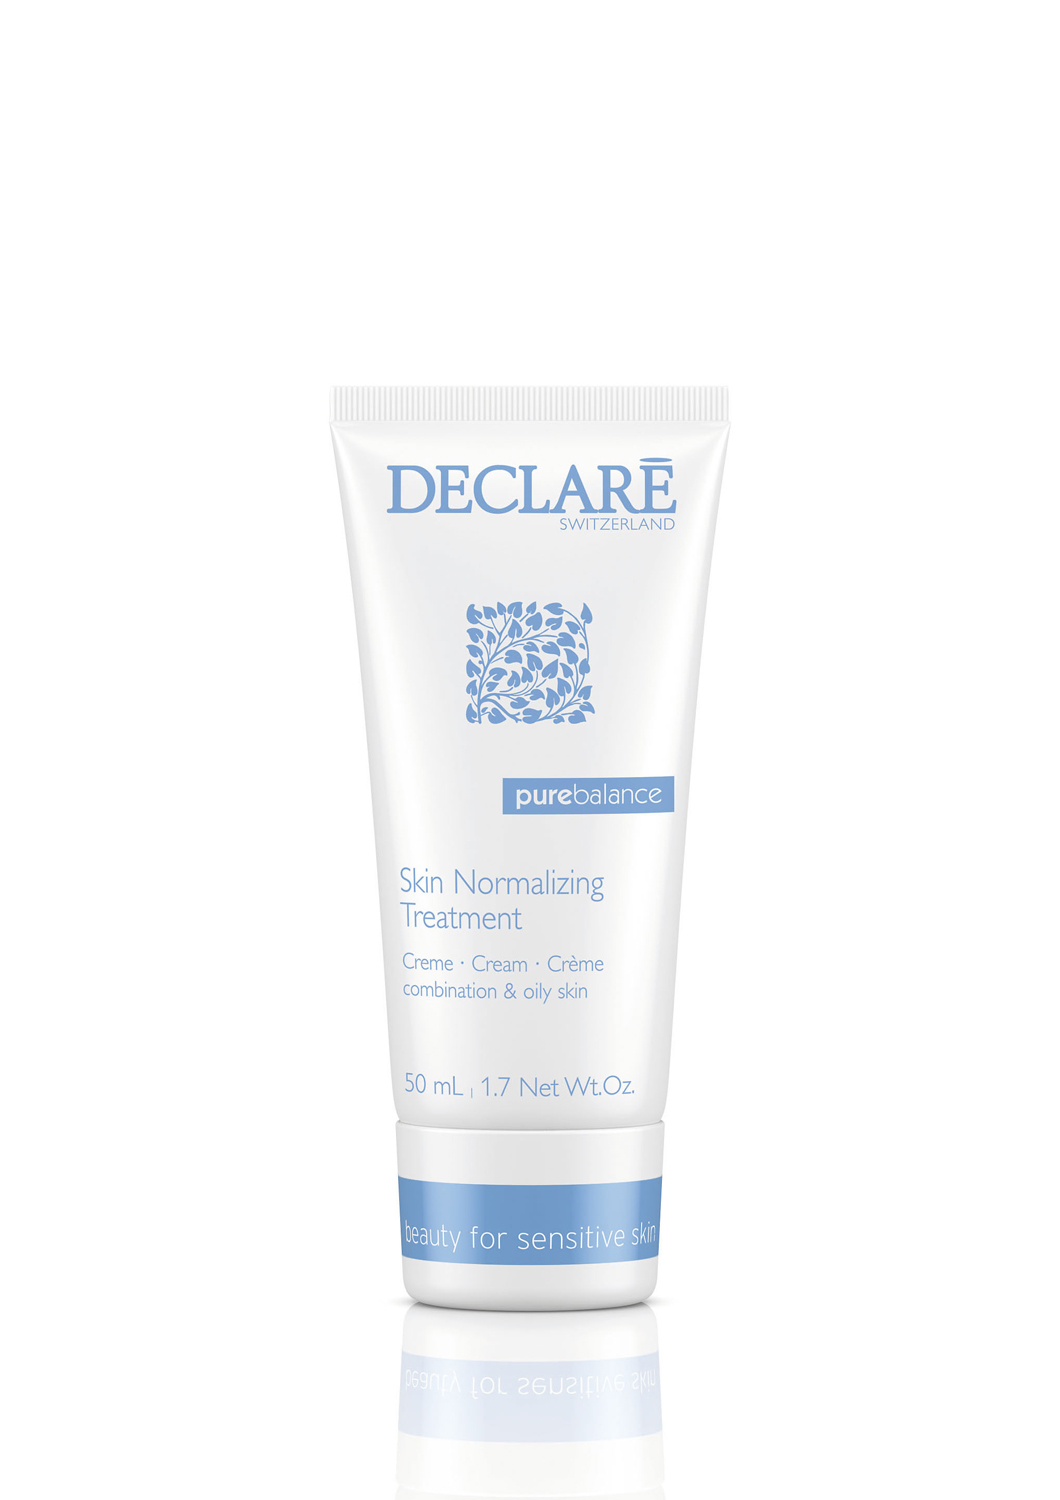 Declaré Pure Balance Skin Normalizing Treatment Cream Крем, восстанавливающий баланс кожи (50 ml) 532